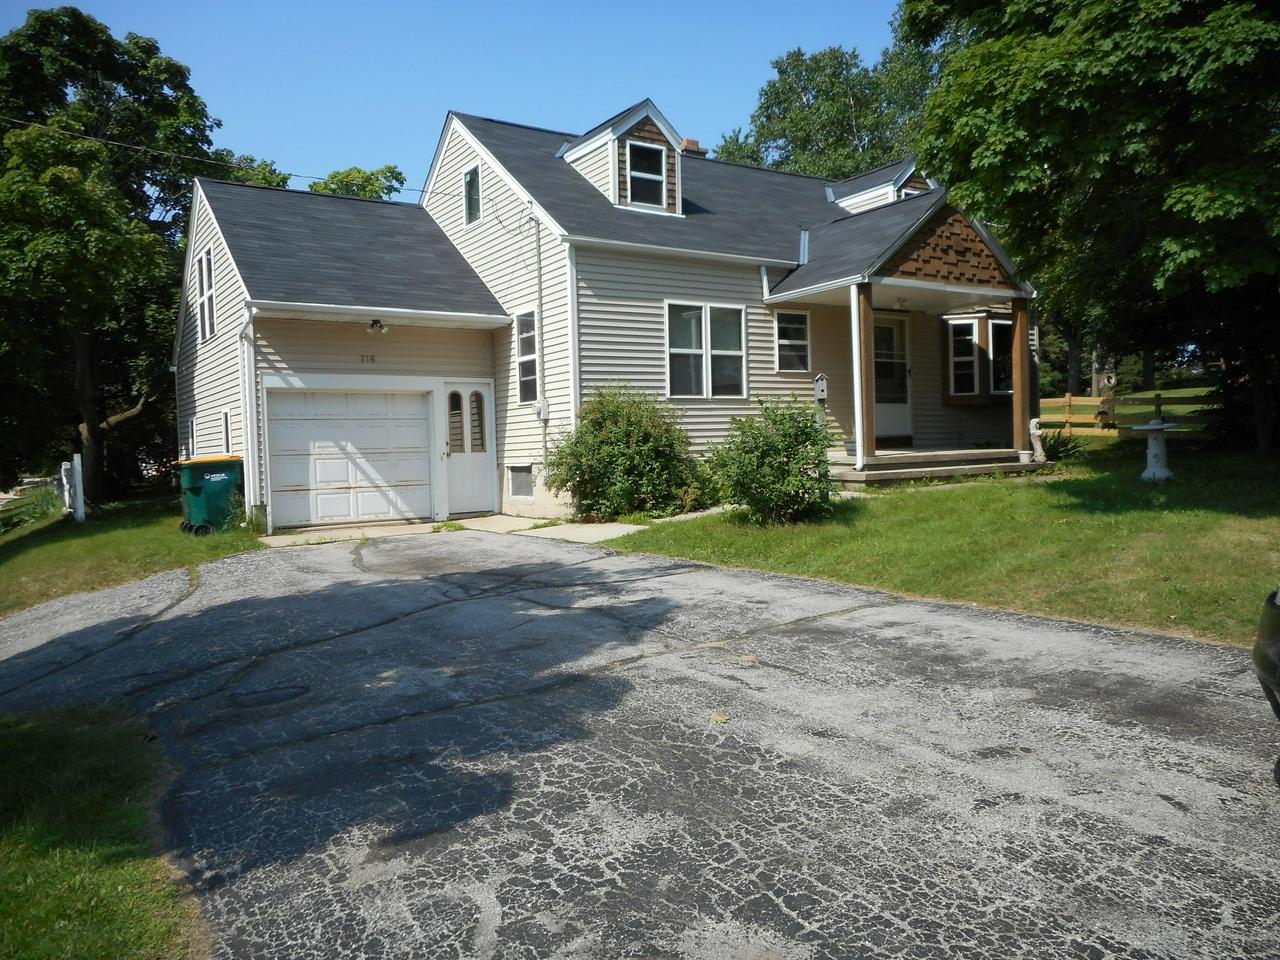 2 bedroom Cape Cod with newer windows, window trim and siding. Eat-in kitchen with loads of cabinets. 2 bedrooms are on the main floor plus the room above the garage was used as a bedroom. Possibilities for expansion in the attic area and potential rec room and 1/2 bath located in the basement. 1 car attached garage, nice sized yard plus a 12x12 storage shed. Could use some TLC. Sold as-is.